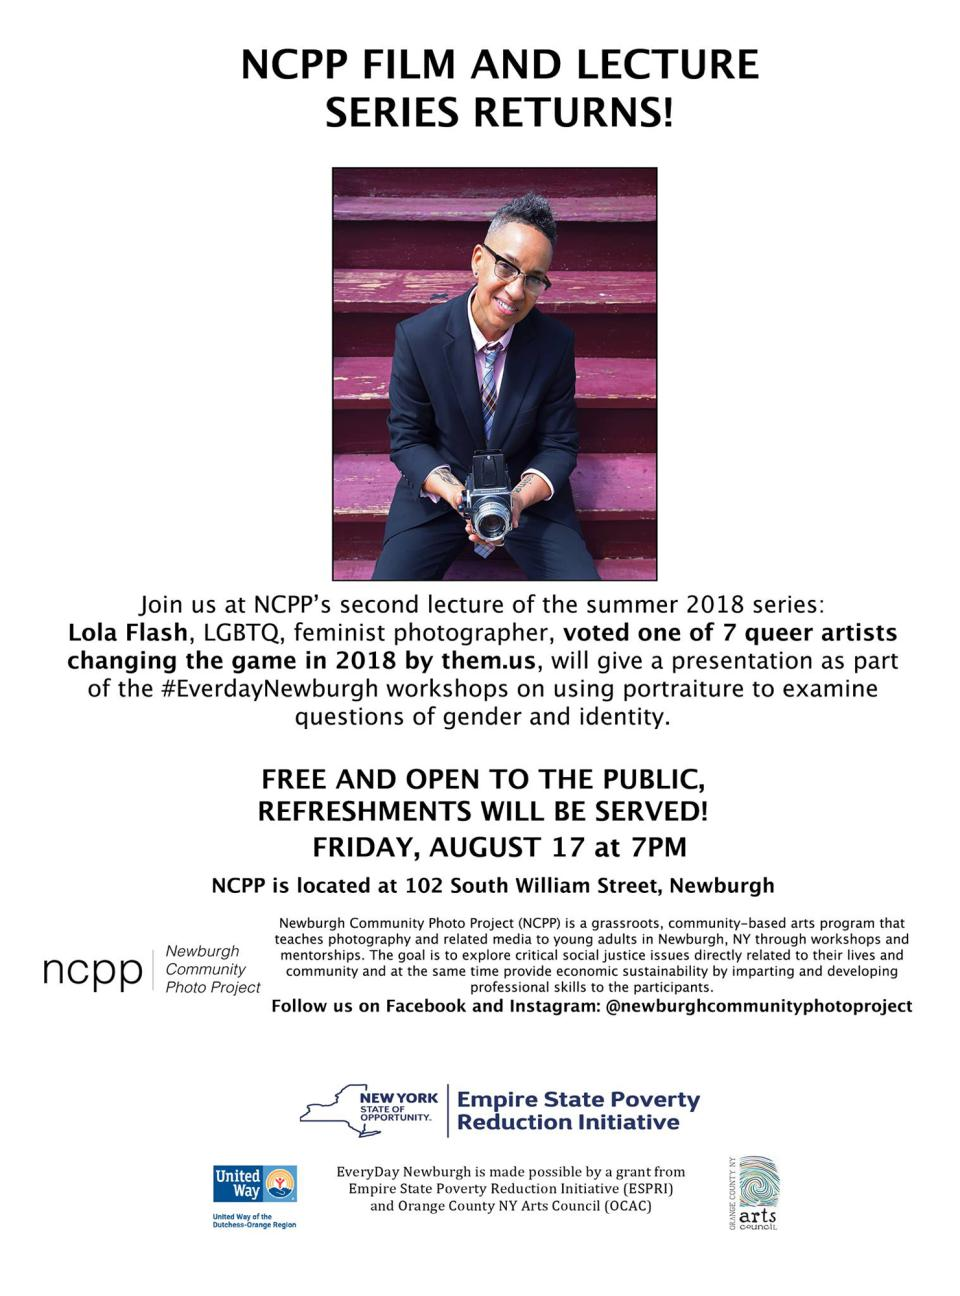 Poster announcing lecture by New York City photographer Lola Flash, NCPP Everyday Newburgh Workshop, 2018